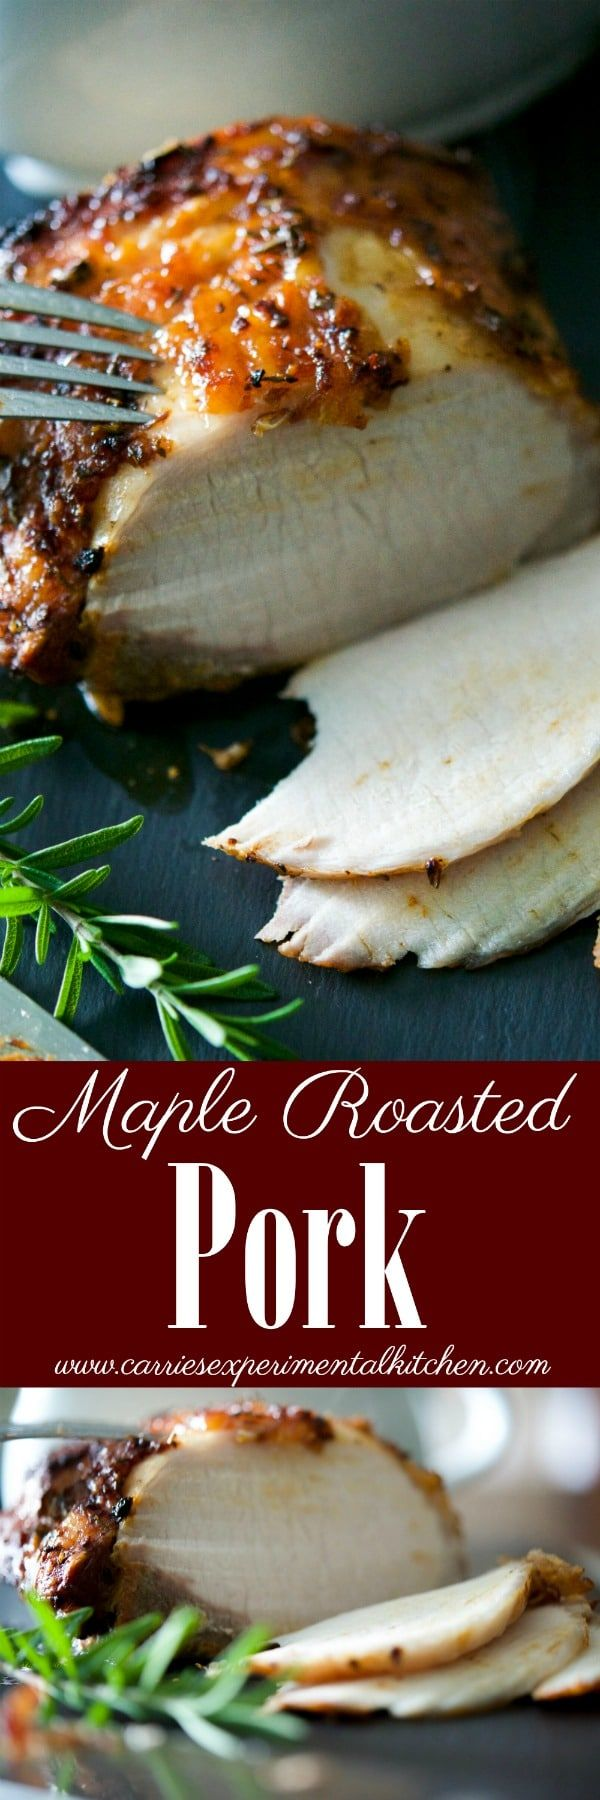 Pork loin basted with maple syrup, prepared horseradish, Dijon mustard, garlic and fresh rosemary is perfect for Sunday dinners or weeknight meals.